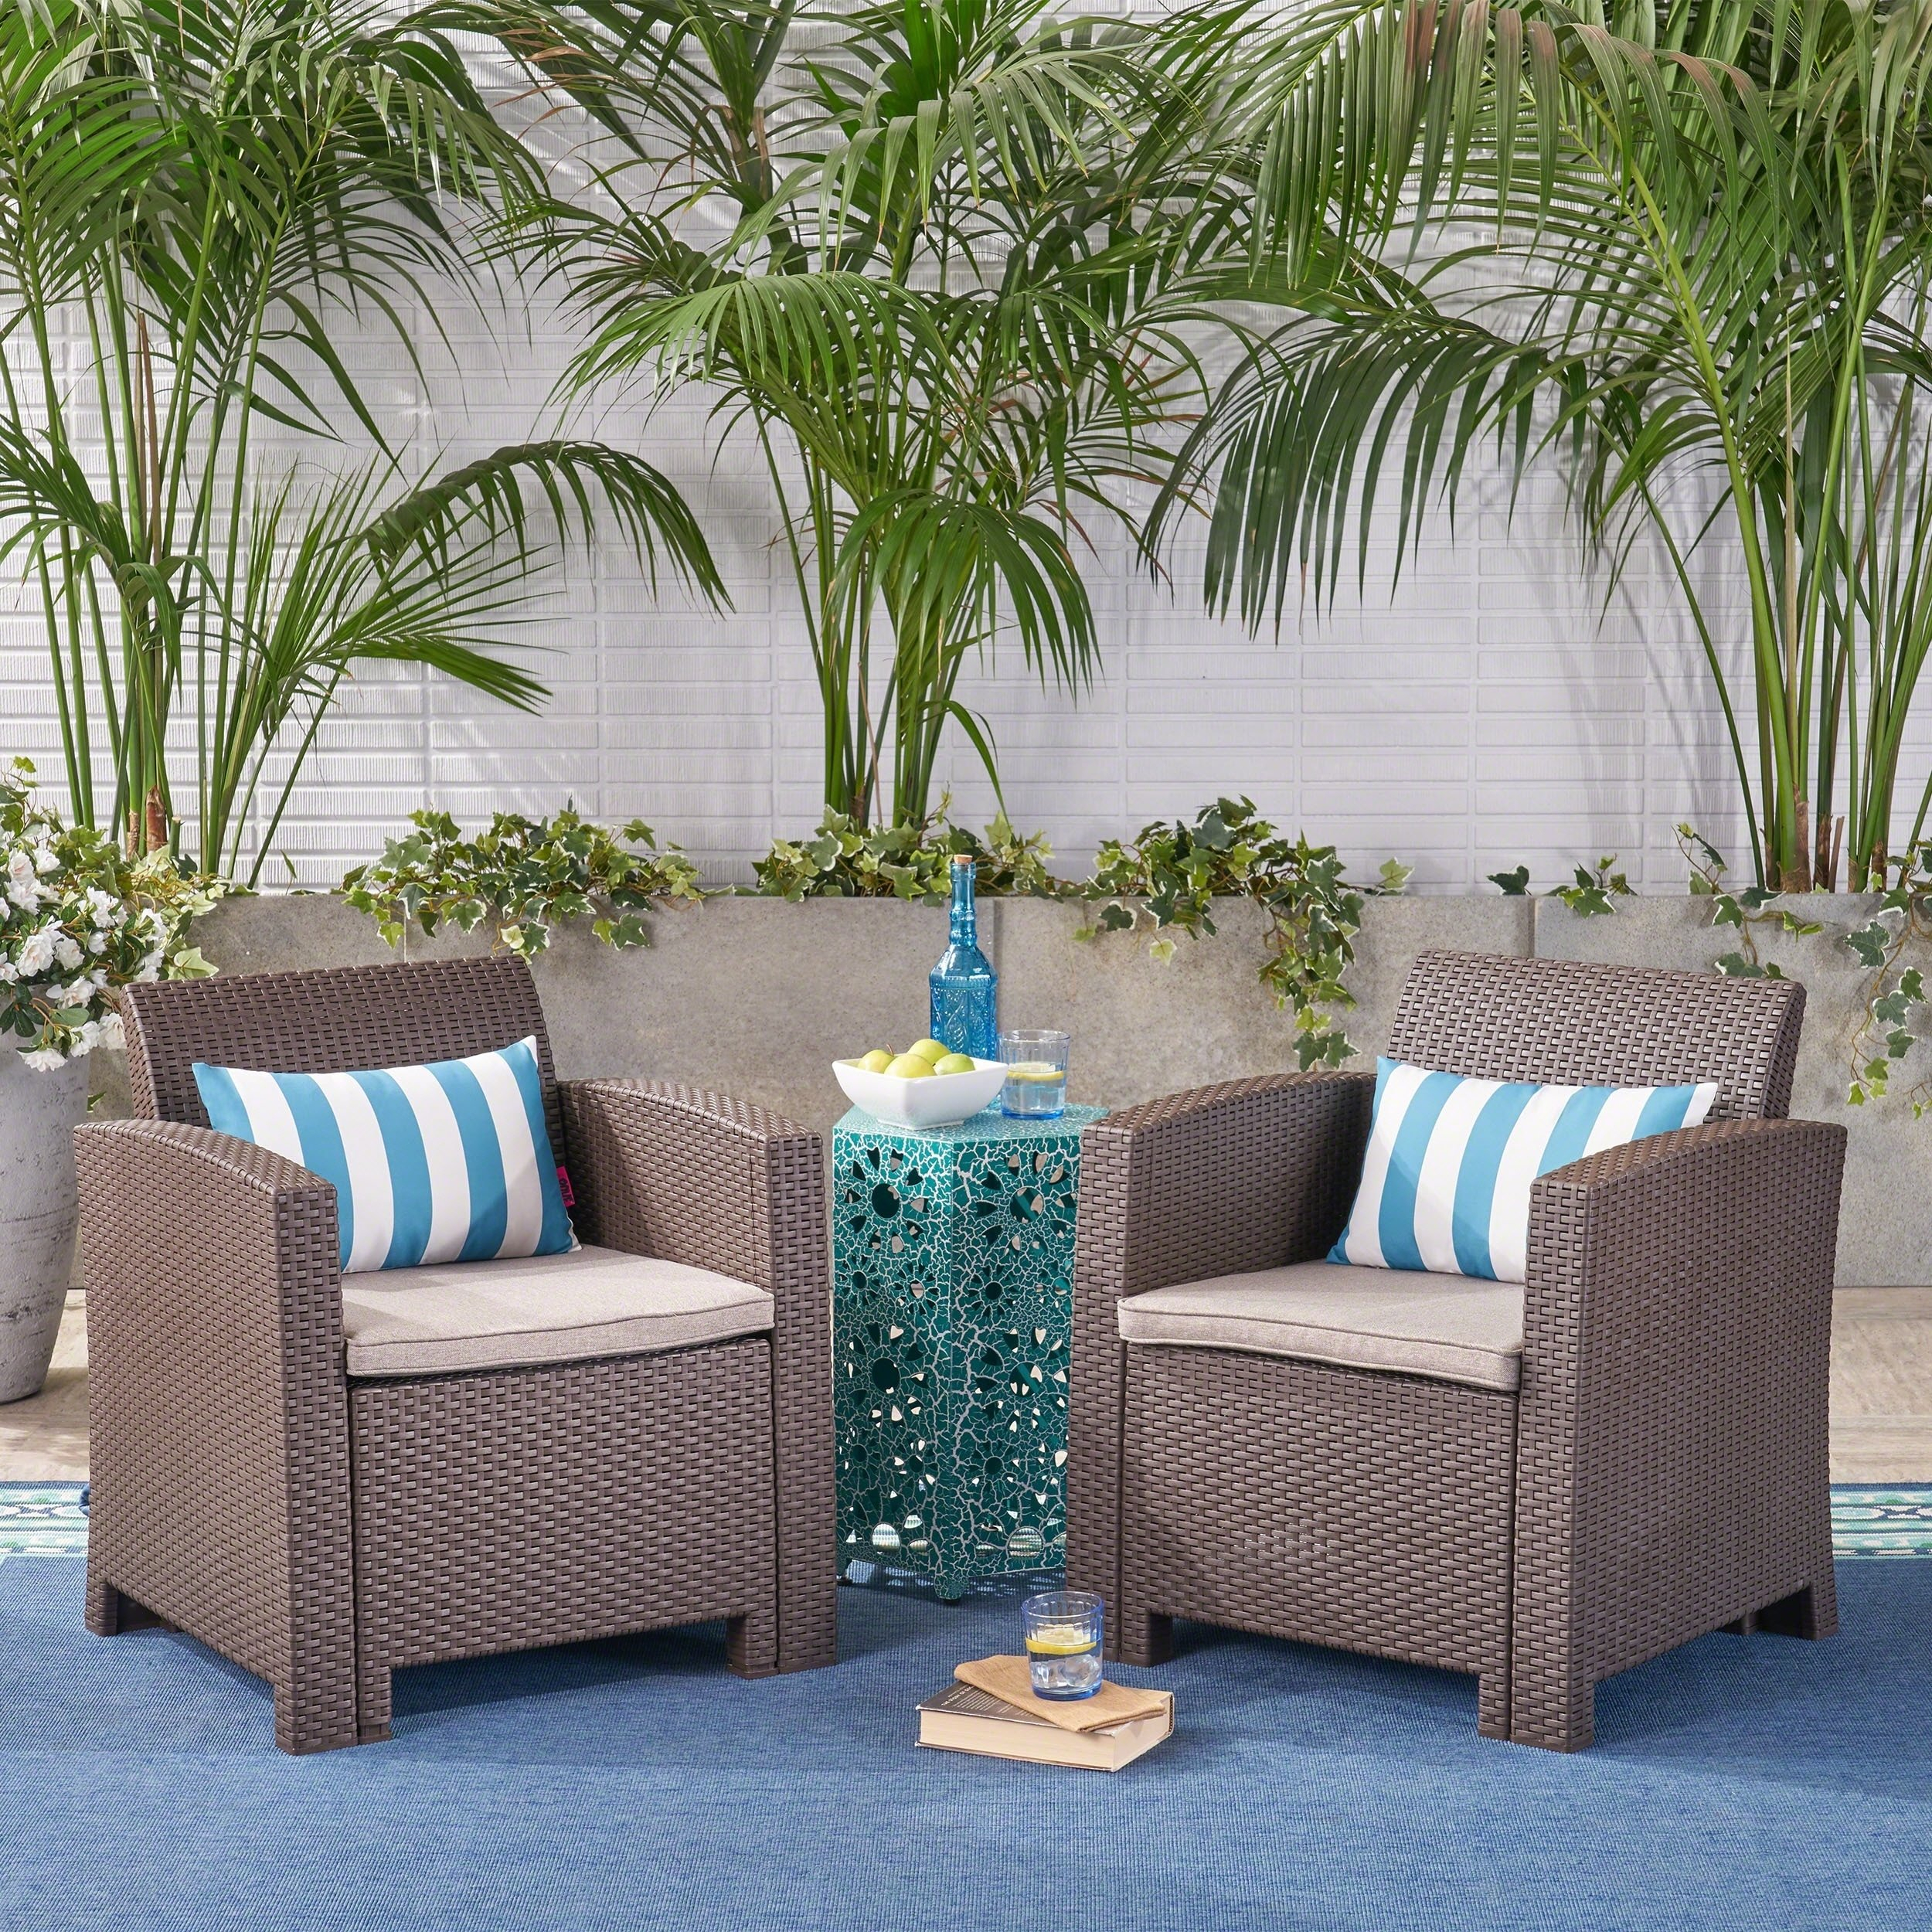 Buy 2 Outdoor Sofas, Chairs & Sectionals Online At Overstock Intended For Alder Grande Ii Swivel Chairs (View 19 of 25)